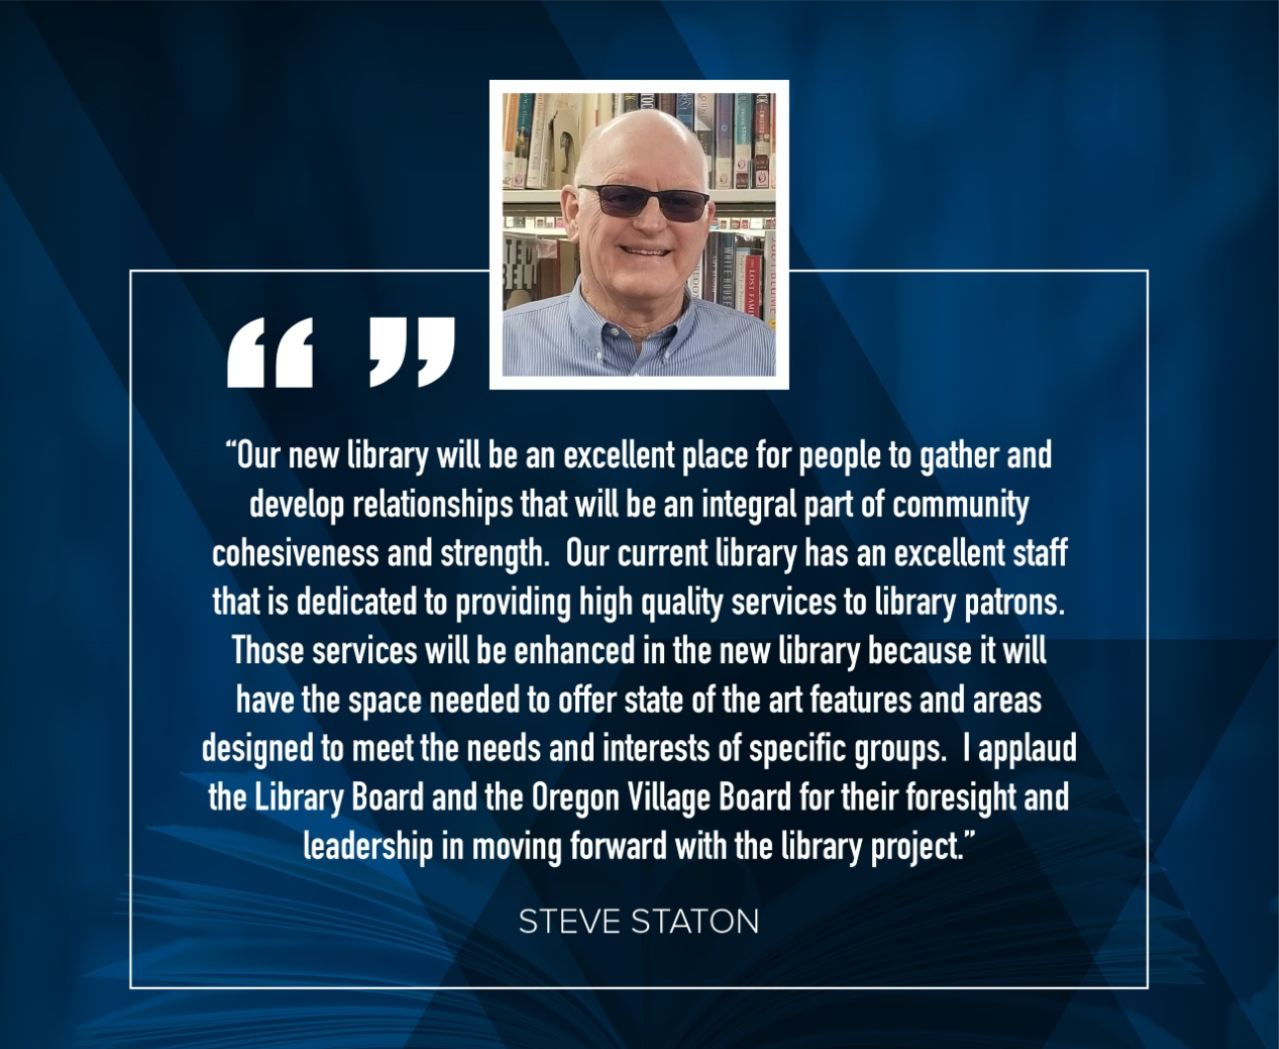 "Steve Staton: ""Our new library will be an excellent place for people to gather and develop relationships that will be an integral part of community cohesiveness and strength.  Our current library has an excellent staff that is dedicated to providing high quality services to library patrons.  Those services will be enhanced in the new library because it will have the space needed to offer state of the art features and areas designed to meet the needs and interests of specific groups.  I applaud the Library Board and the Oregon Village Board for their foresight and leadership in moving forward with the library project."""